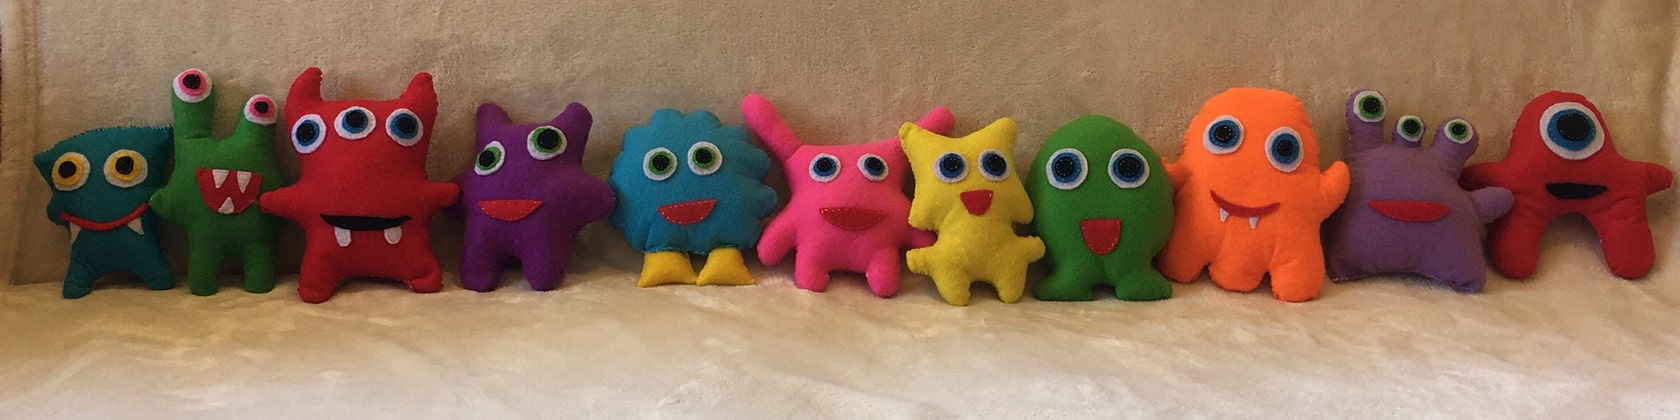 a6df3b577fb7e Snuggly monster toys by Snugables on Etsy